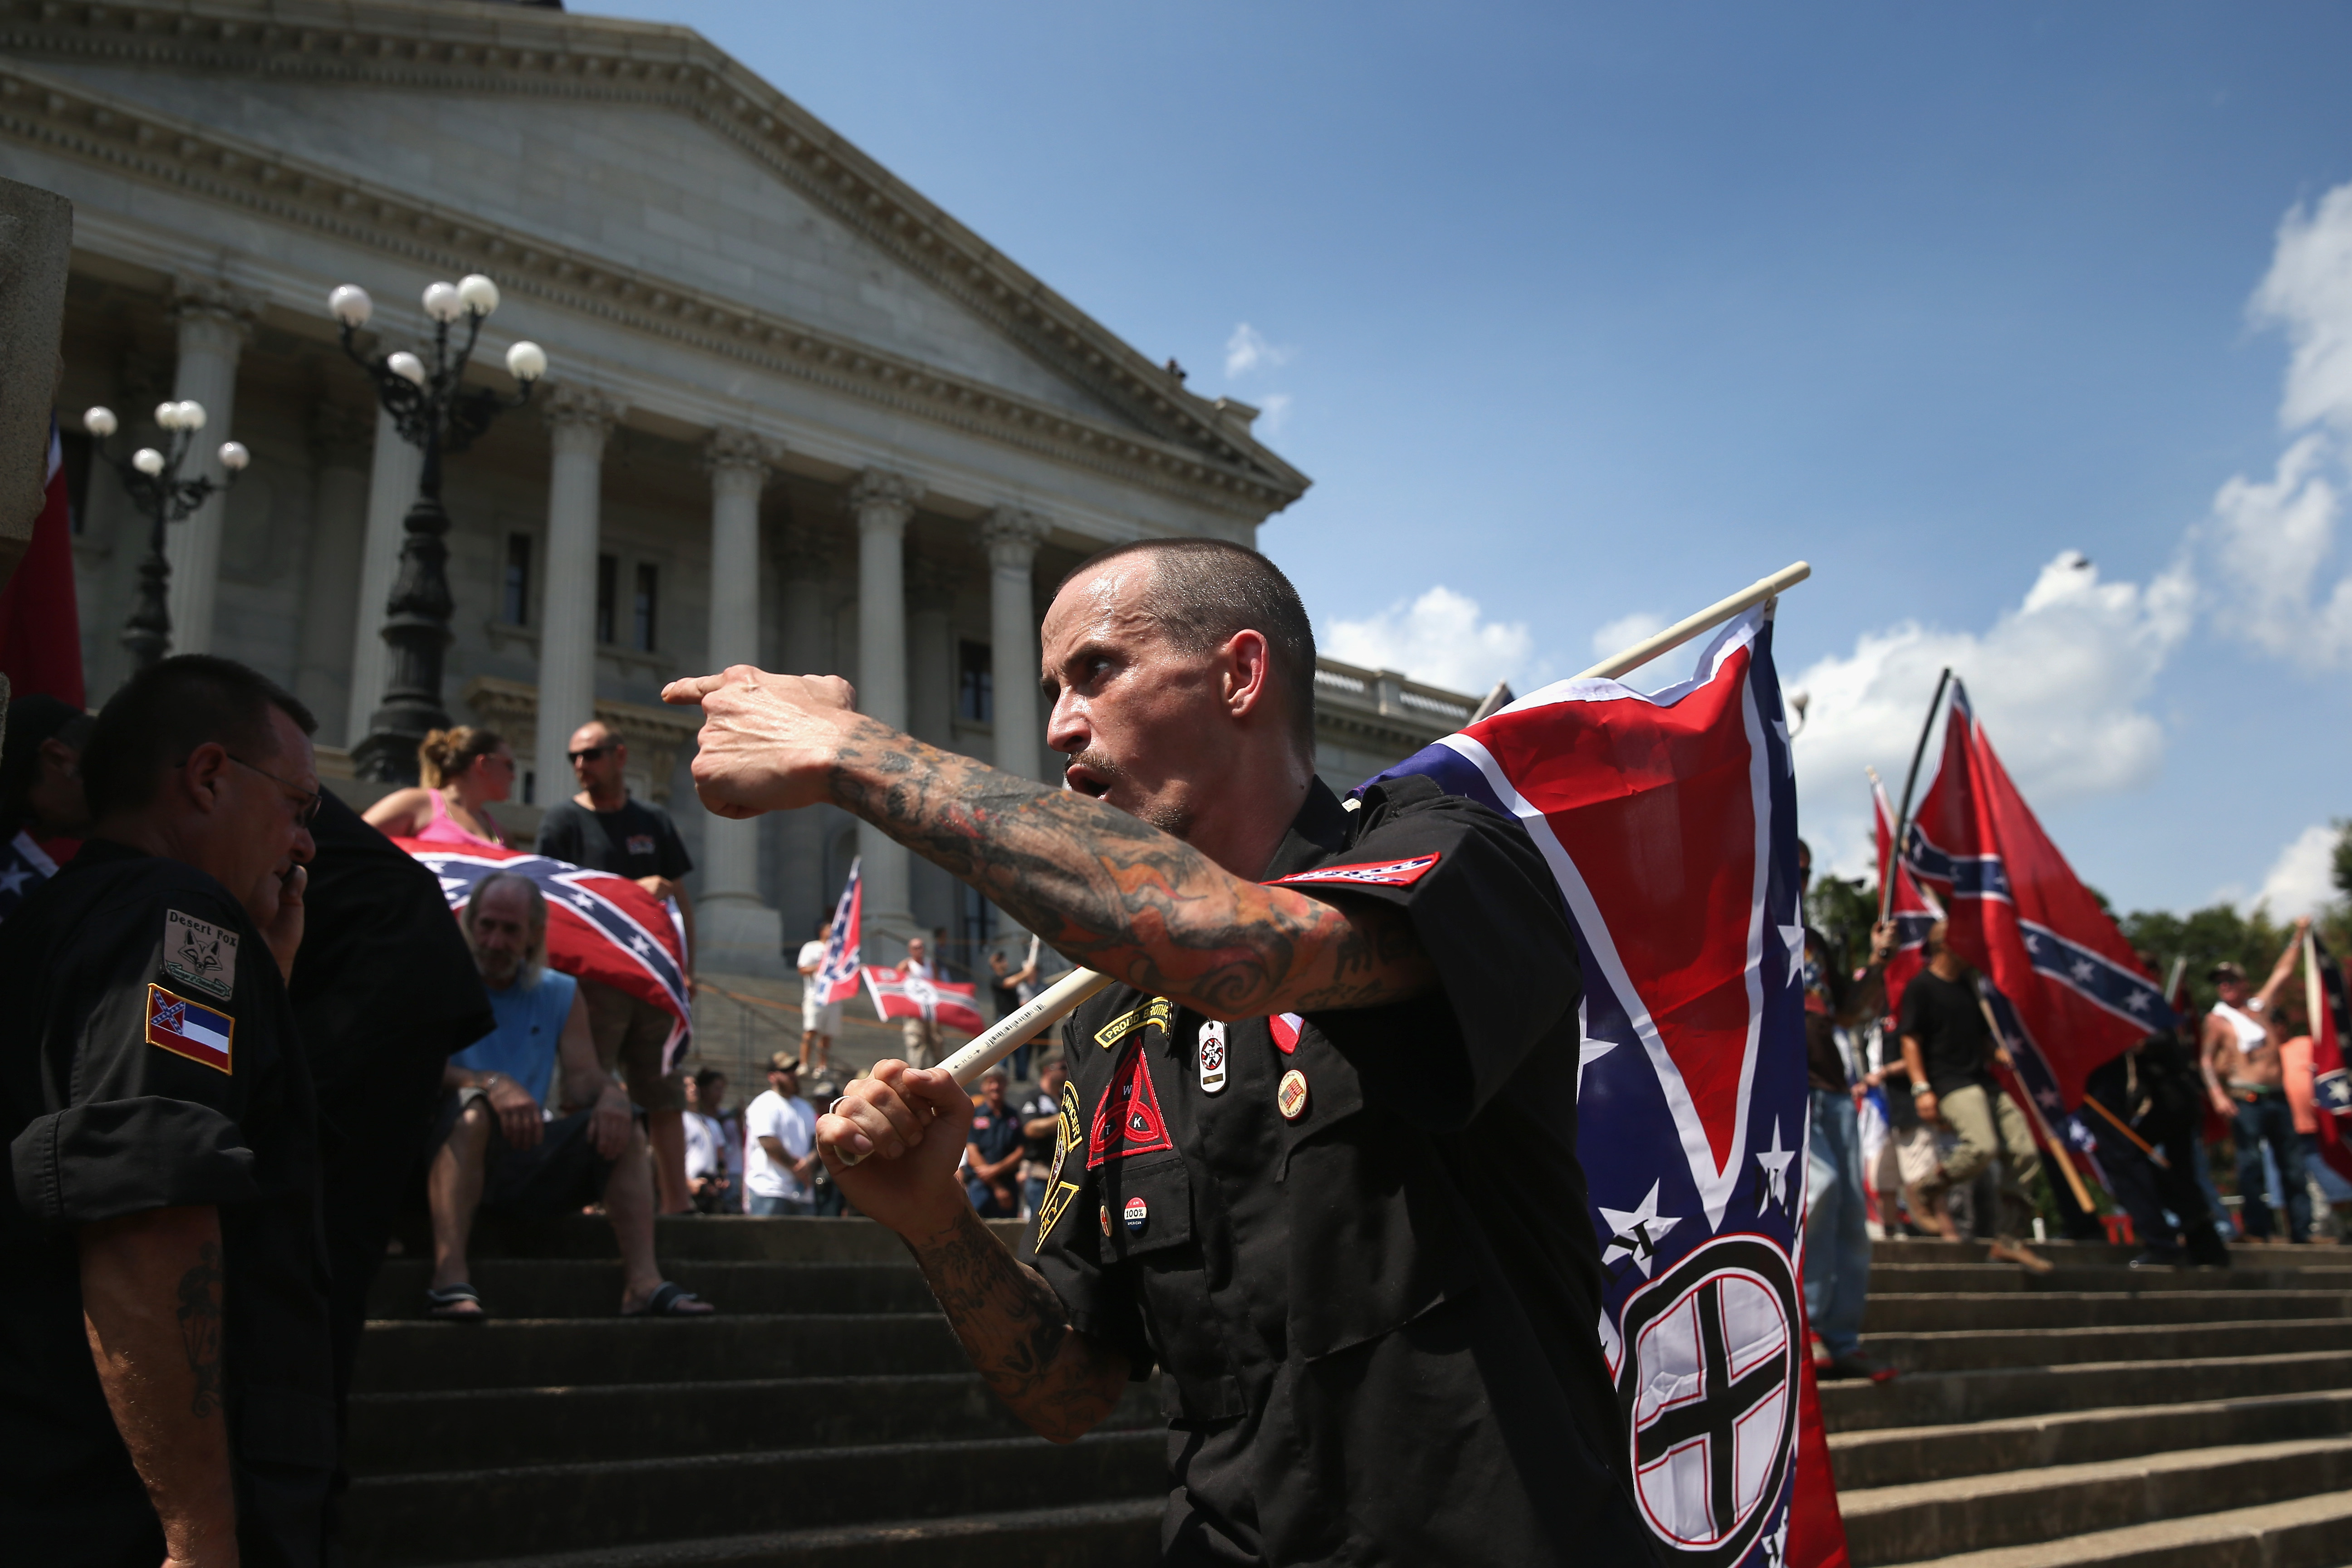 Counter protesters and Ku Klux Klan members argue at a Klan demonstration at the state house building  in Columbia, SC on July 18, 2015.